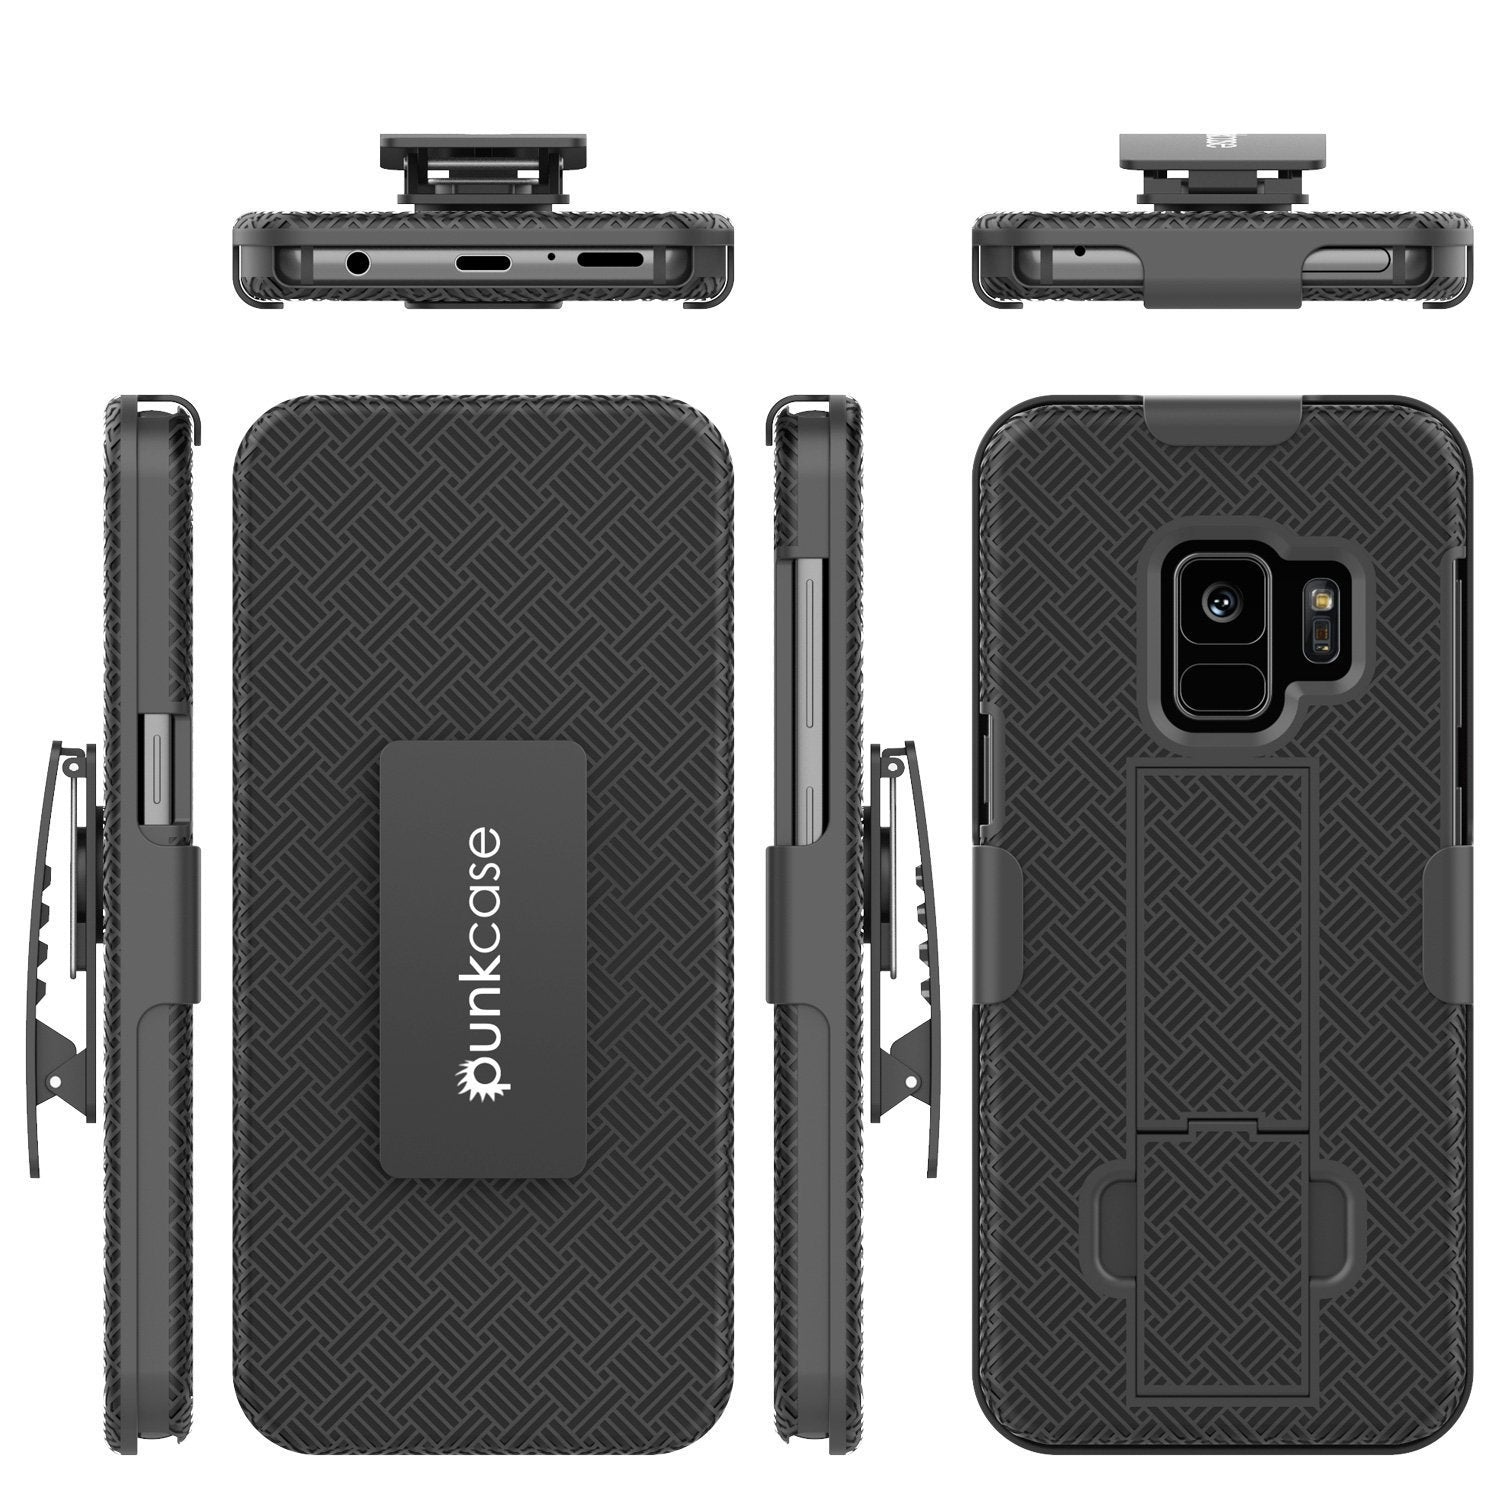 Punkcase Galaxy S9 Case With Screen Protector, Holster Belt Clip & Built-In Kickstand Non Slip Dual Layer Hybrid TPU Full Body Protection [Thin Fit] for Samsung Galaxy S9 Edge [Black]